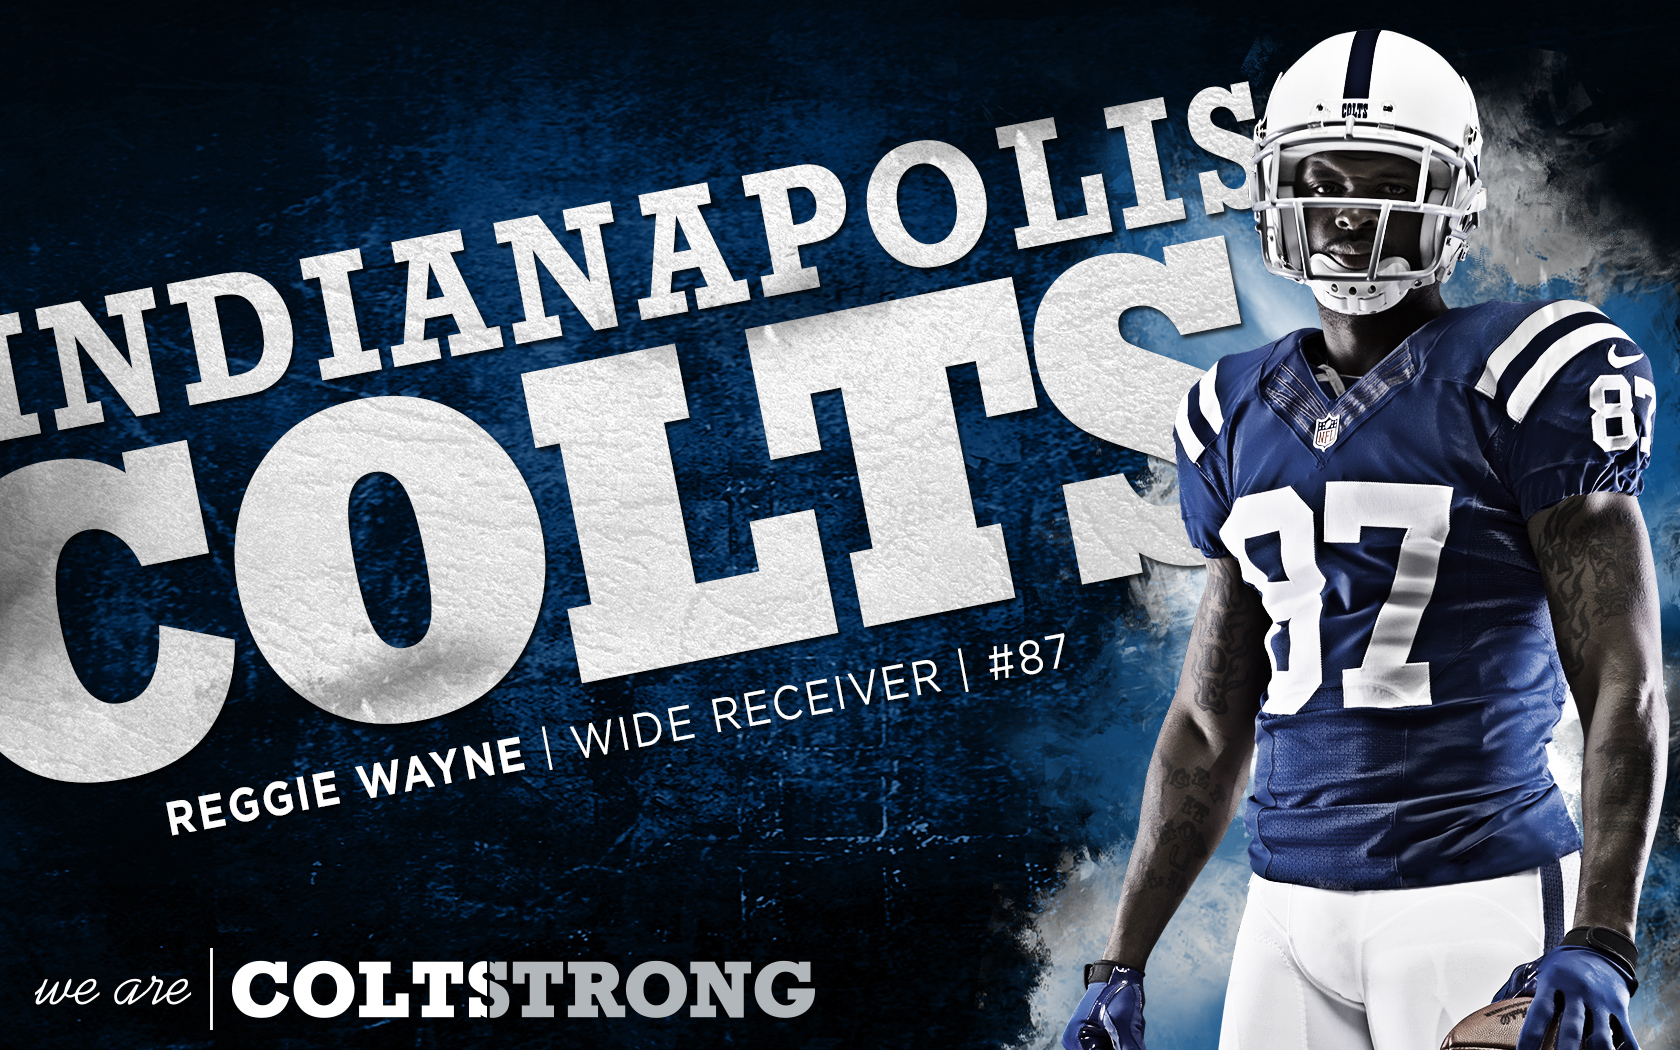 colts wallpaper #4